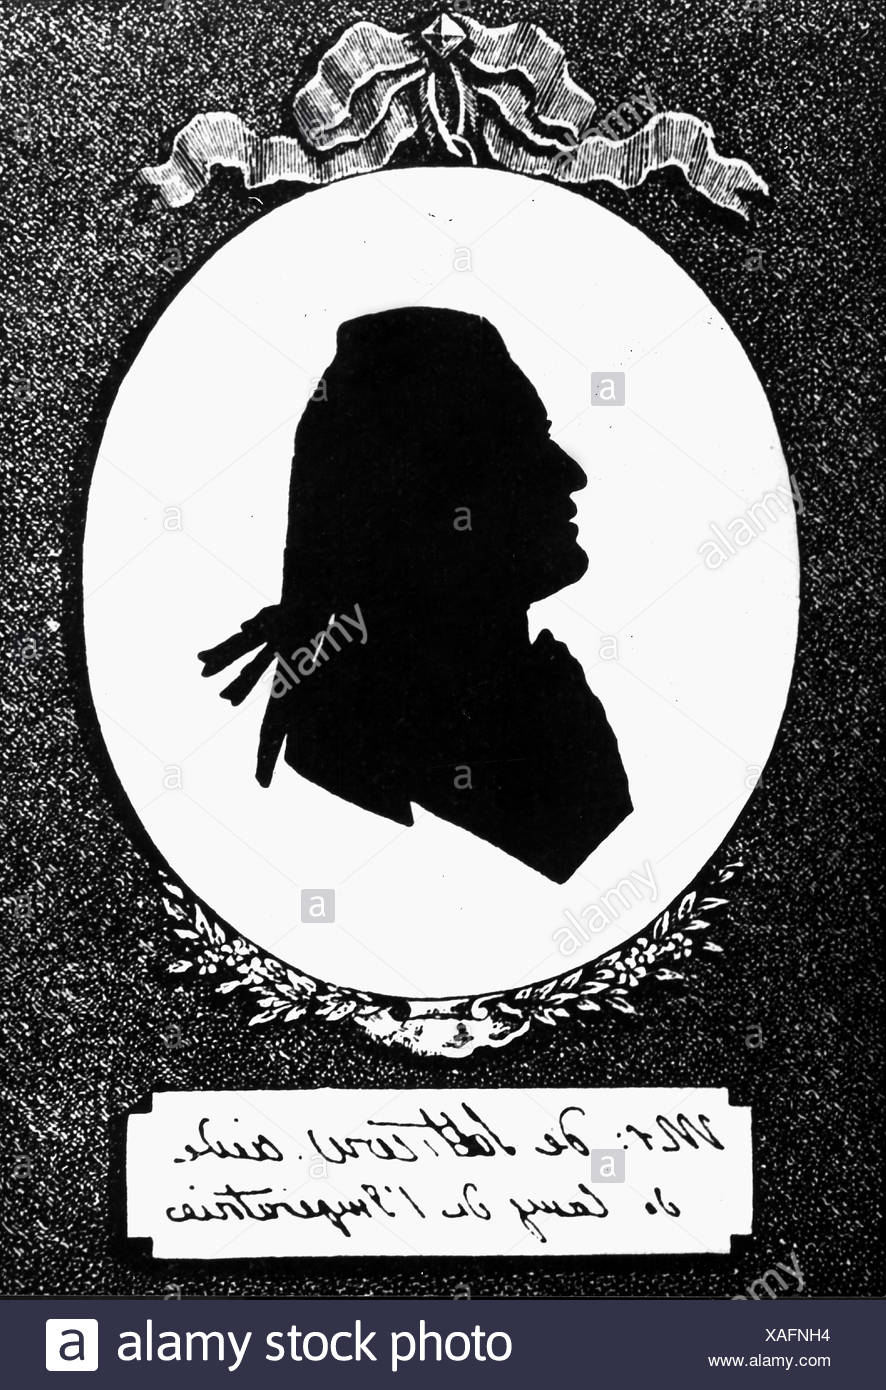 Saltykov, Sergei Vassilievich, 1726 - 1769, Russian courtier, portrait, silhouette, 18th century, , Additional-Rights-Clearances-NA - Stock Image